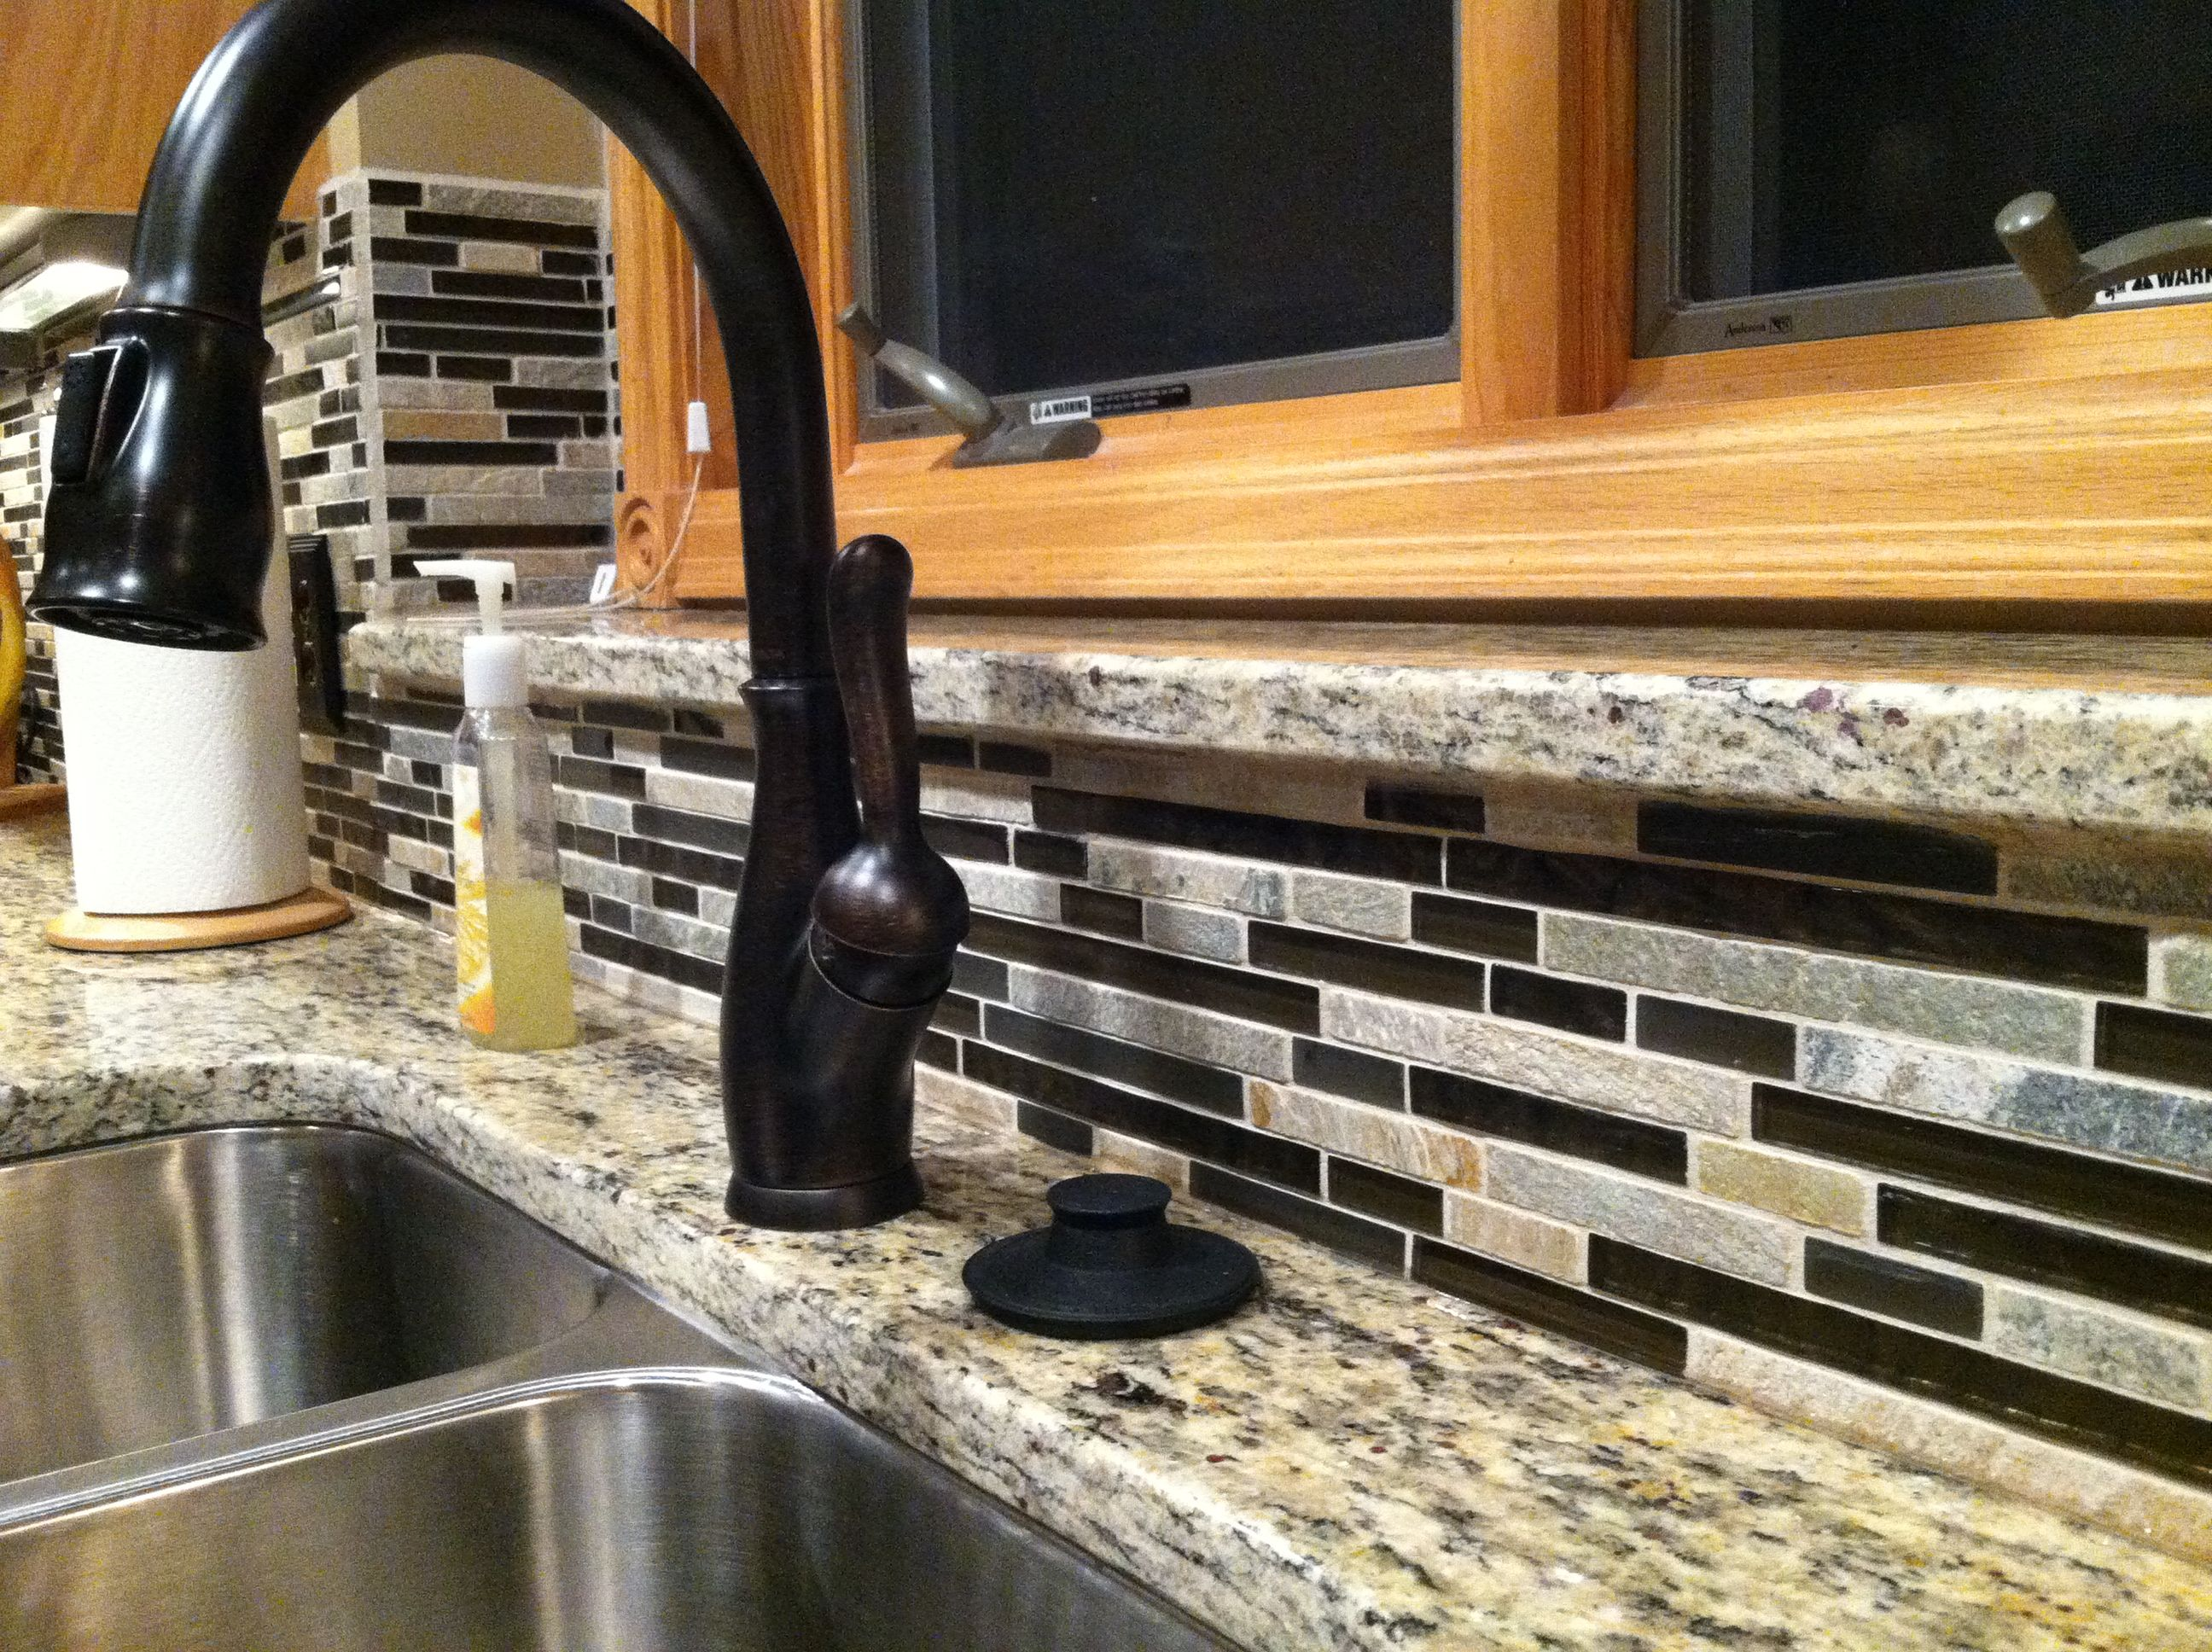 Delta Oil Rubbed Bronze Faucet Backsplash Is Glass And Stone   MC Pacific  Foil/Slate